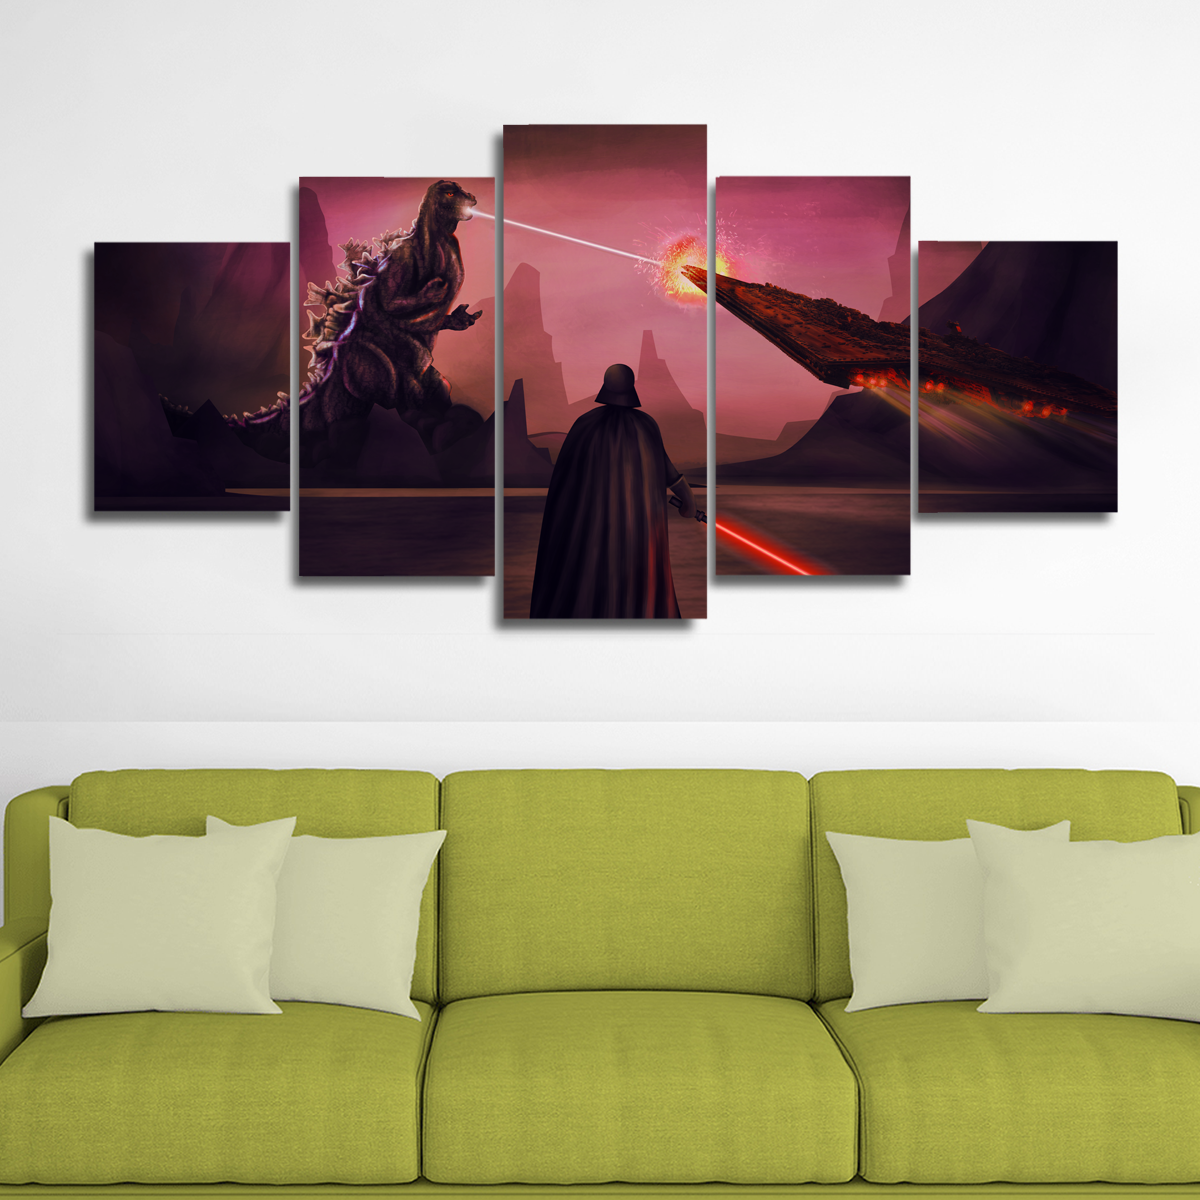 Godzilla vs Darth Vader Canvas Wall Art